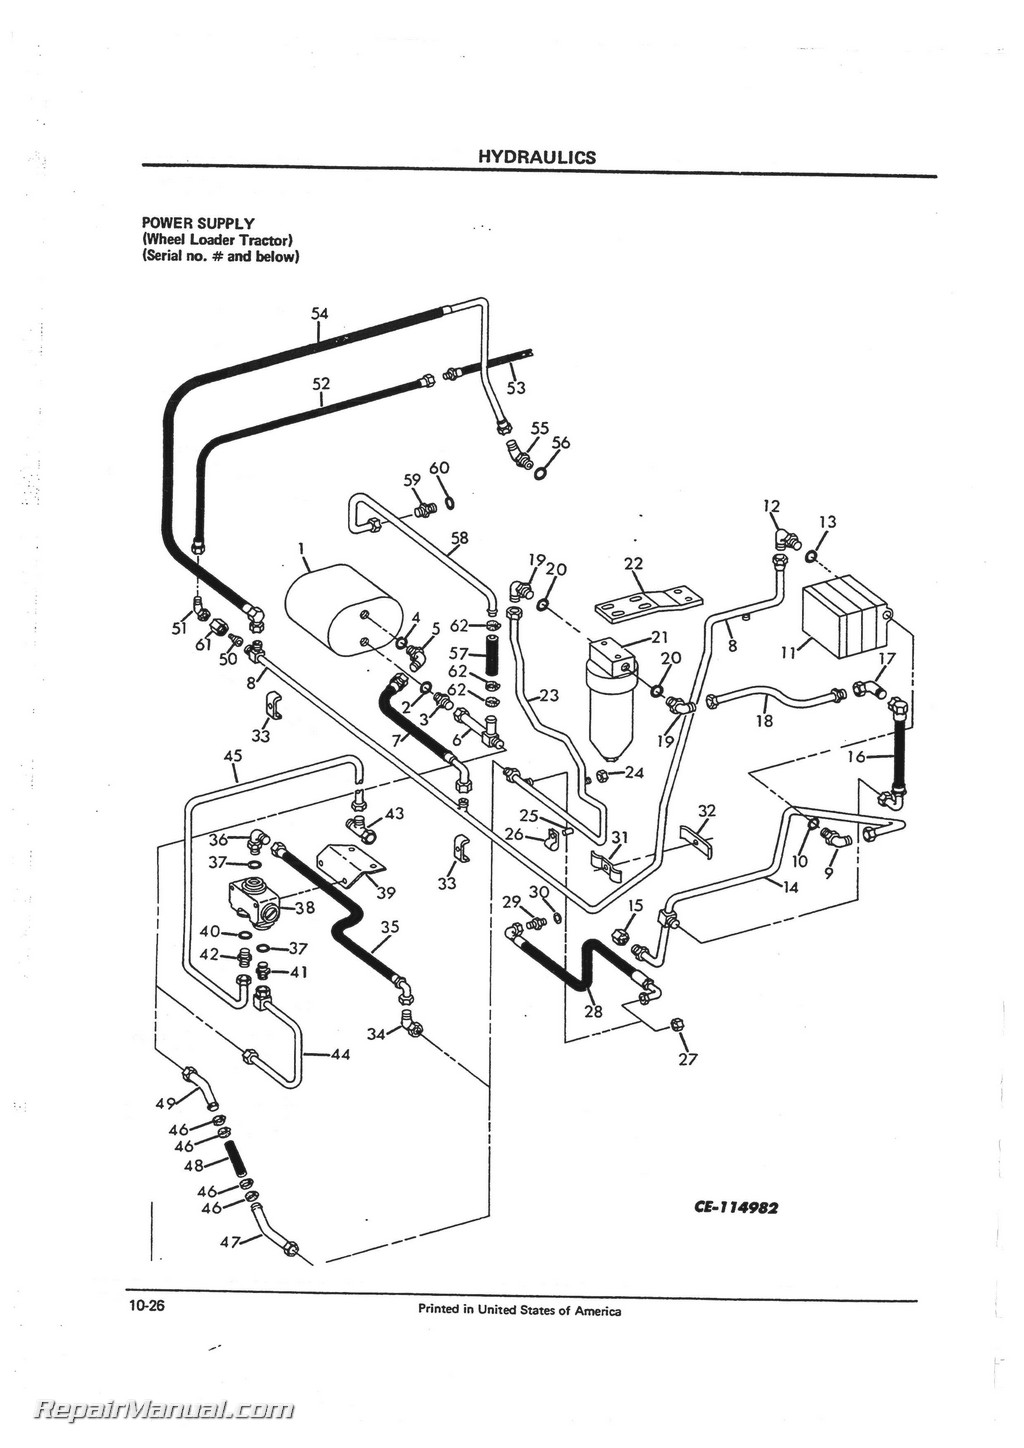 Jd 410 Backhoe Hydraulic Diagram